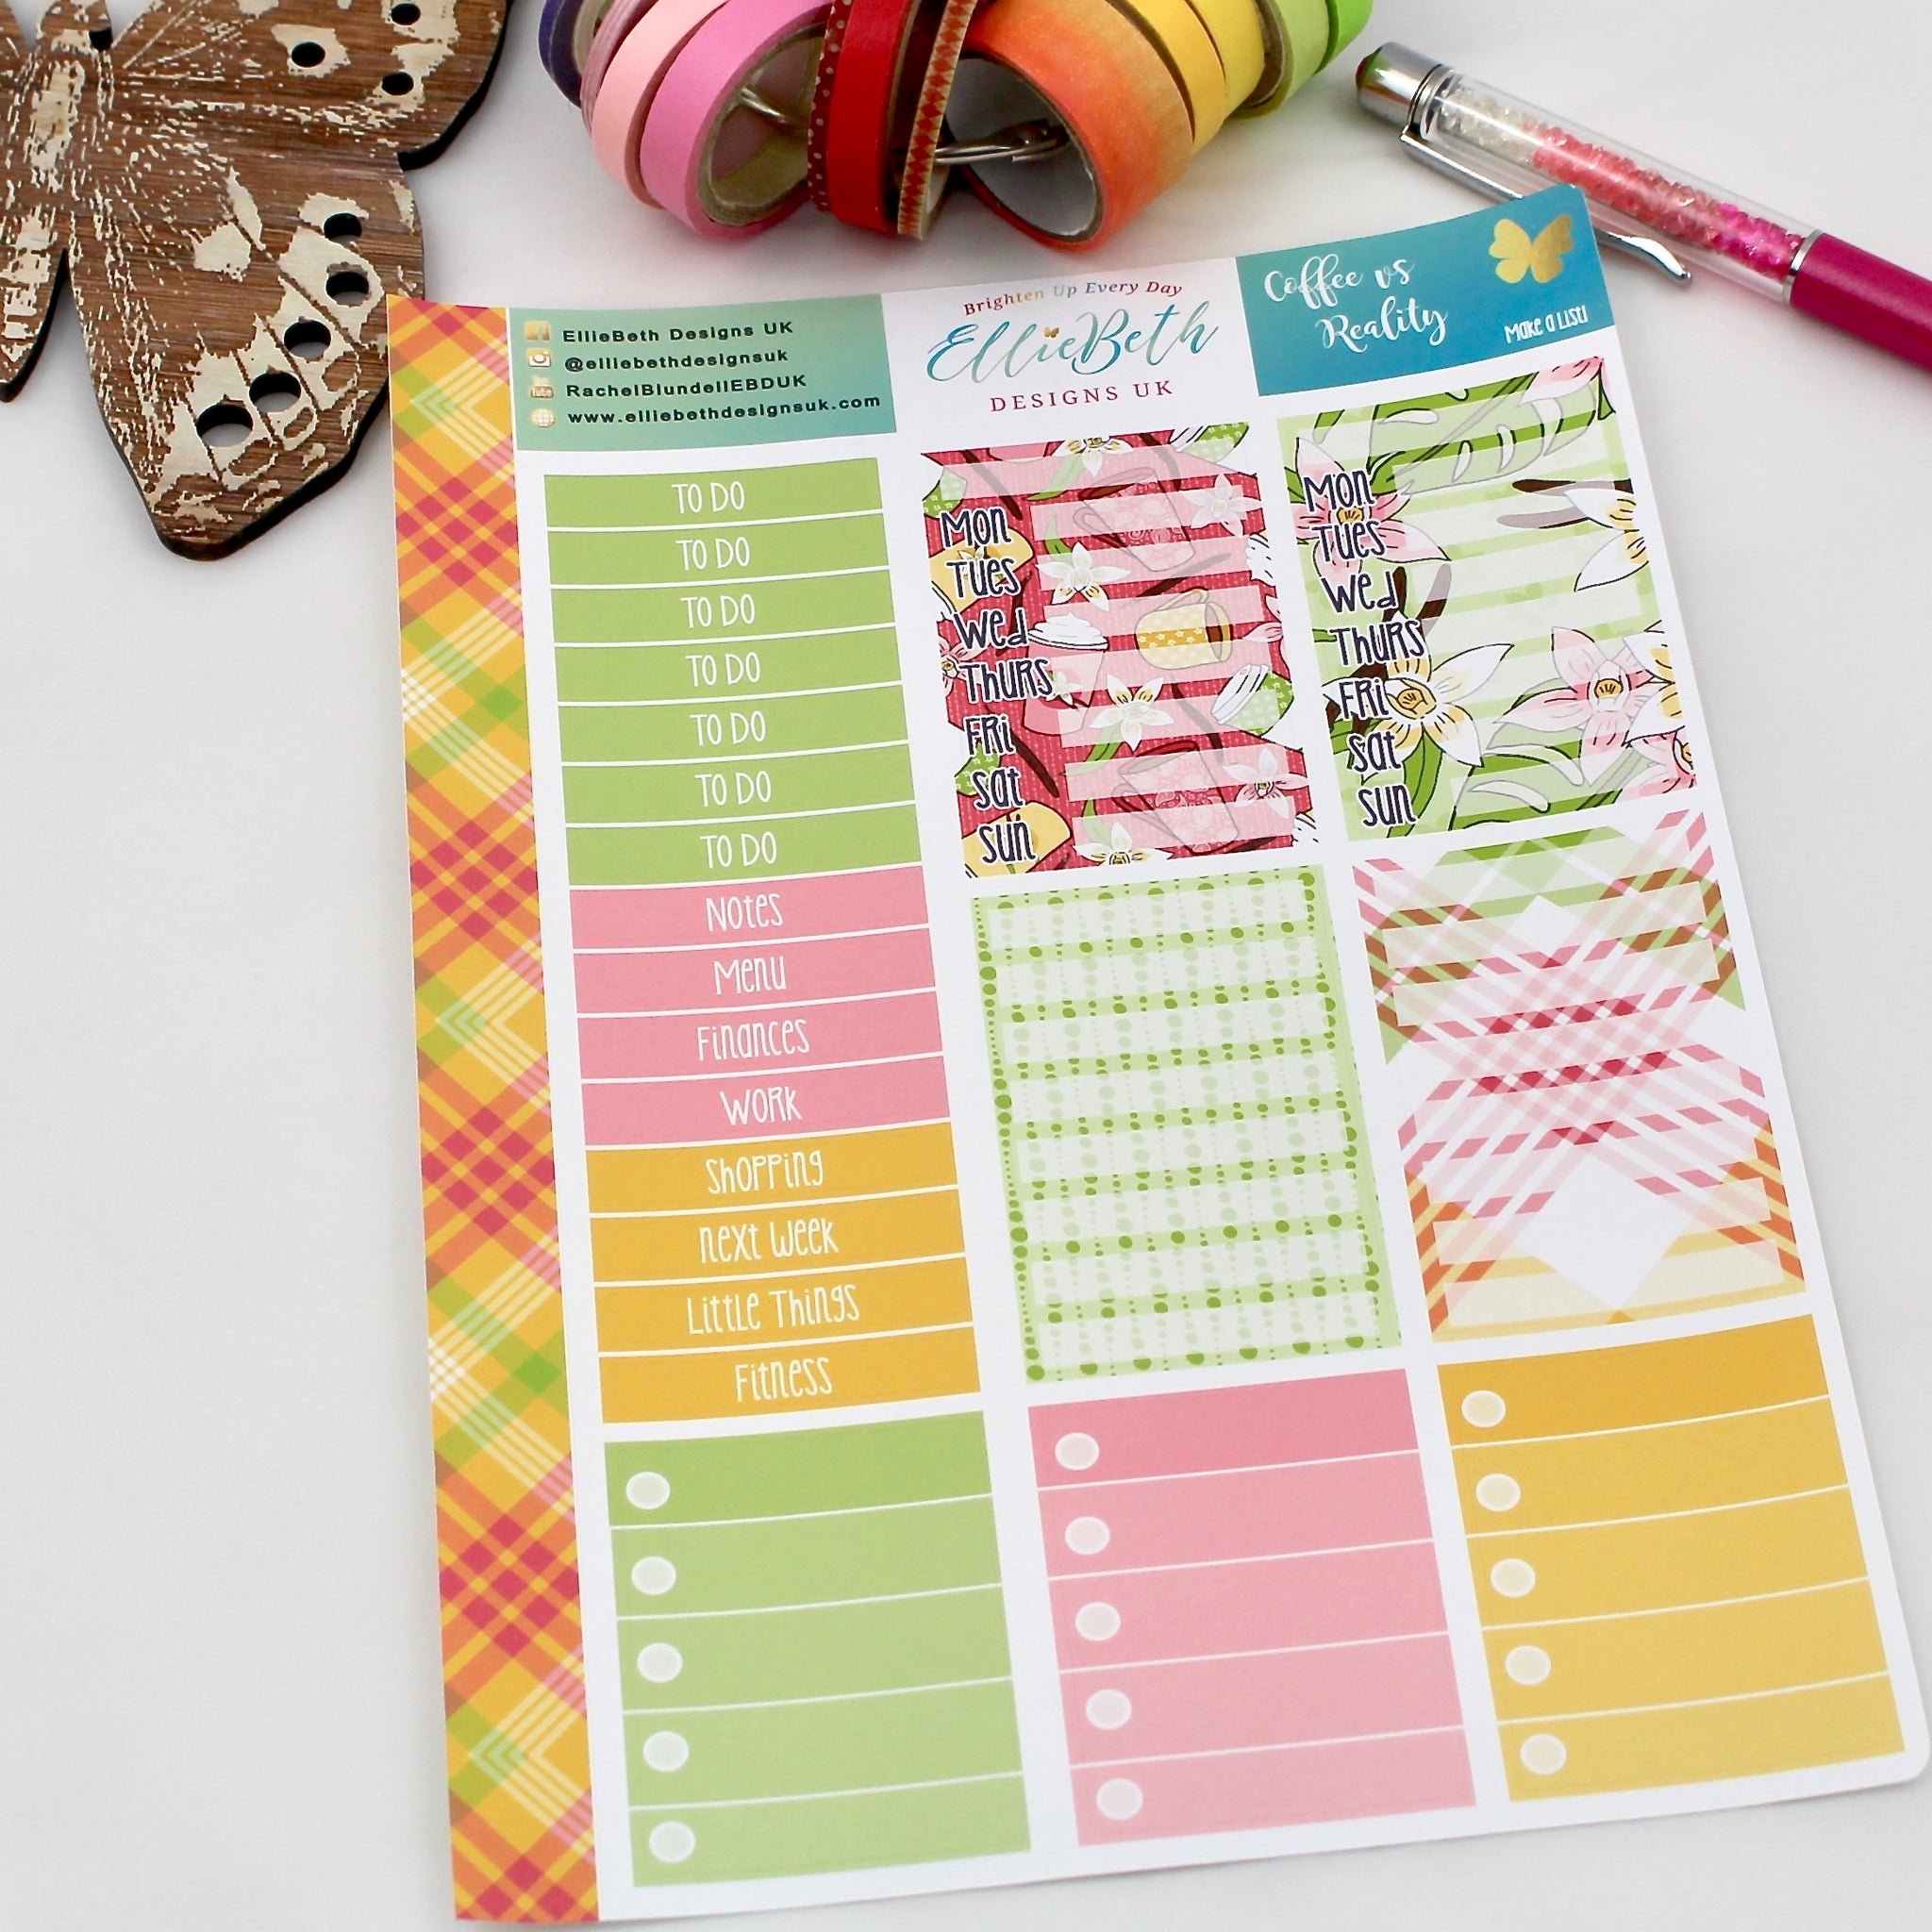 'Coffee vs Reality' - Make a List Sheet -  A5 binder ready planner stickers - EllieBeth Designs UK